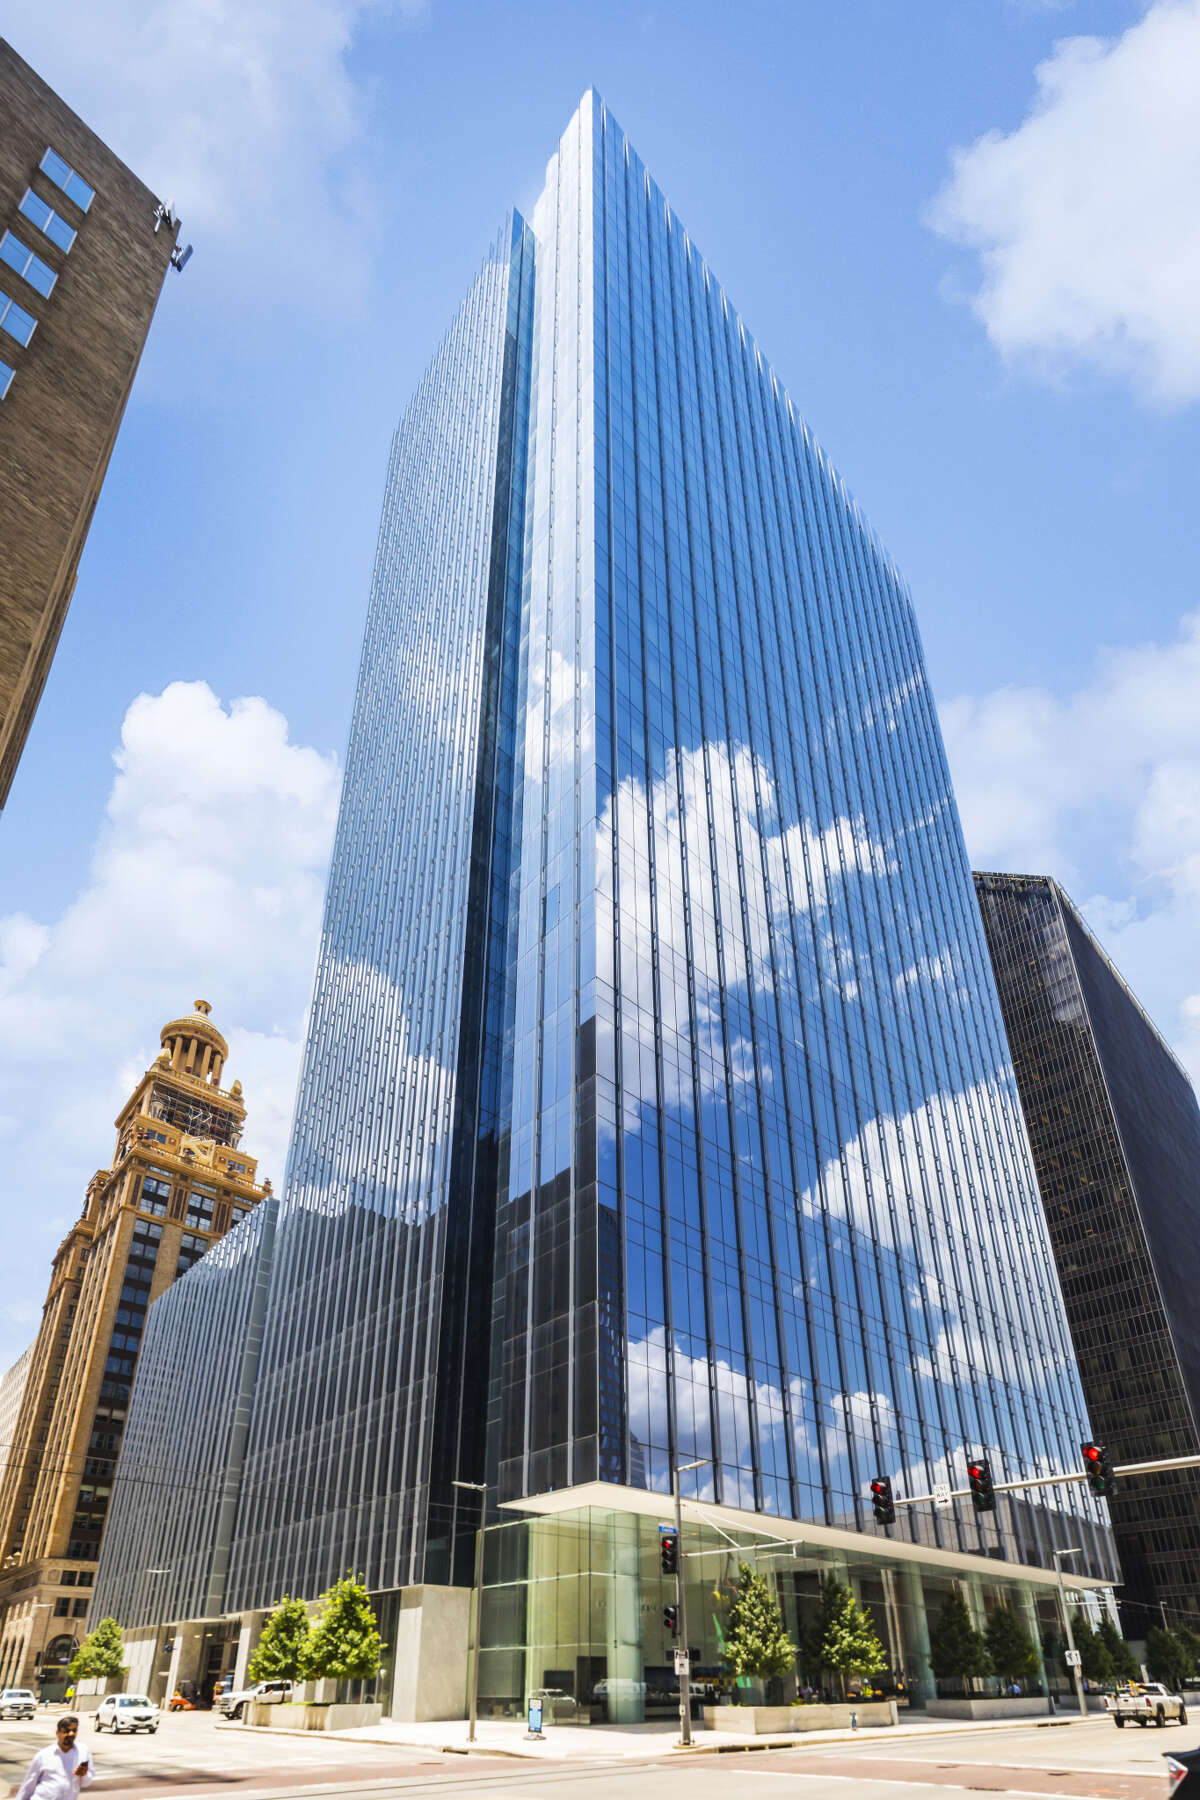 The U.S. Green Building Council has recognized Bank of America Tower as the first LEED v4 Platinum Core & Shell certified project in the United States, Skanska announced.